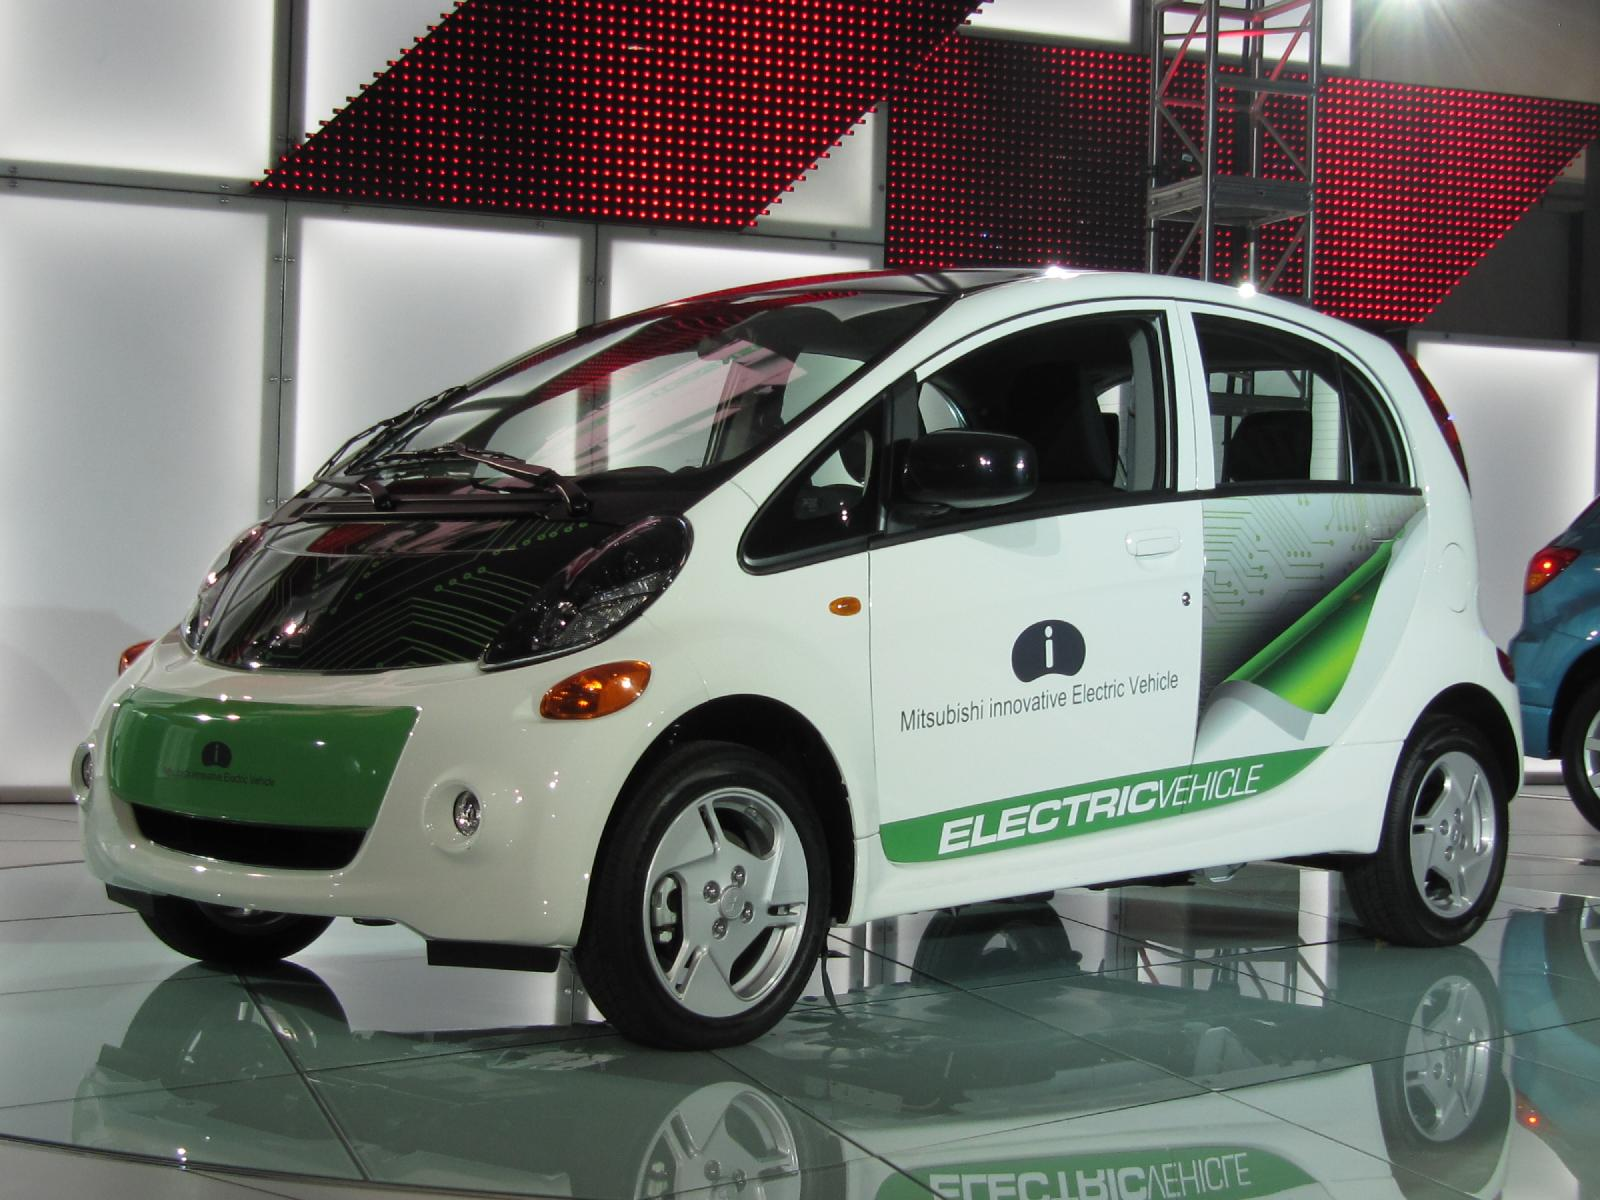 2012 Mitsubishi Electric Mini Car Confirmed To Come To U.S.